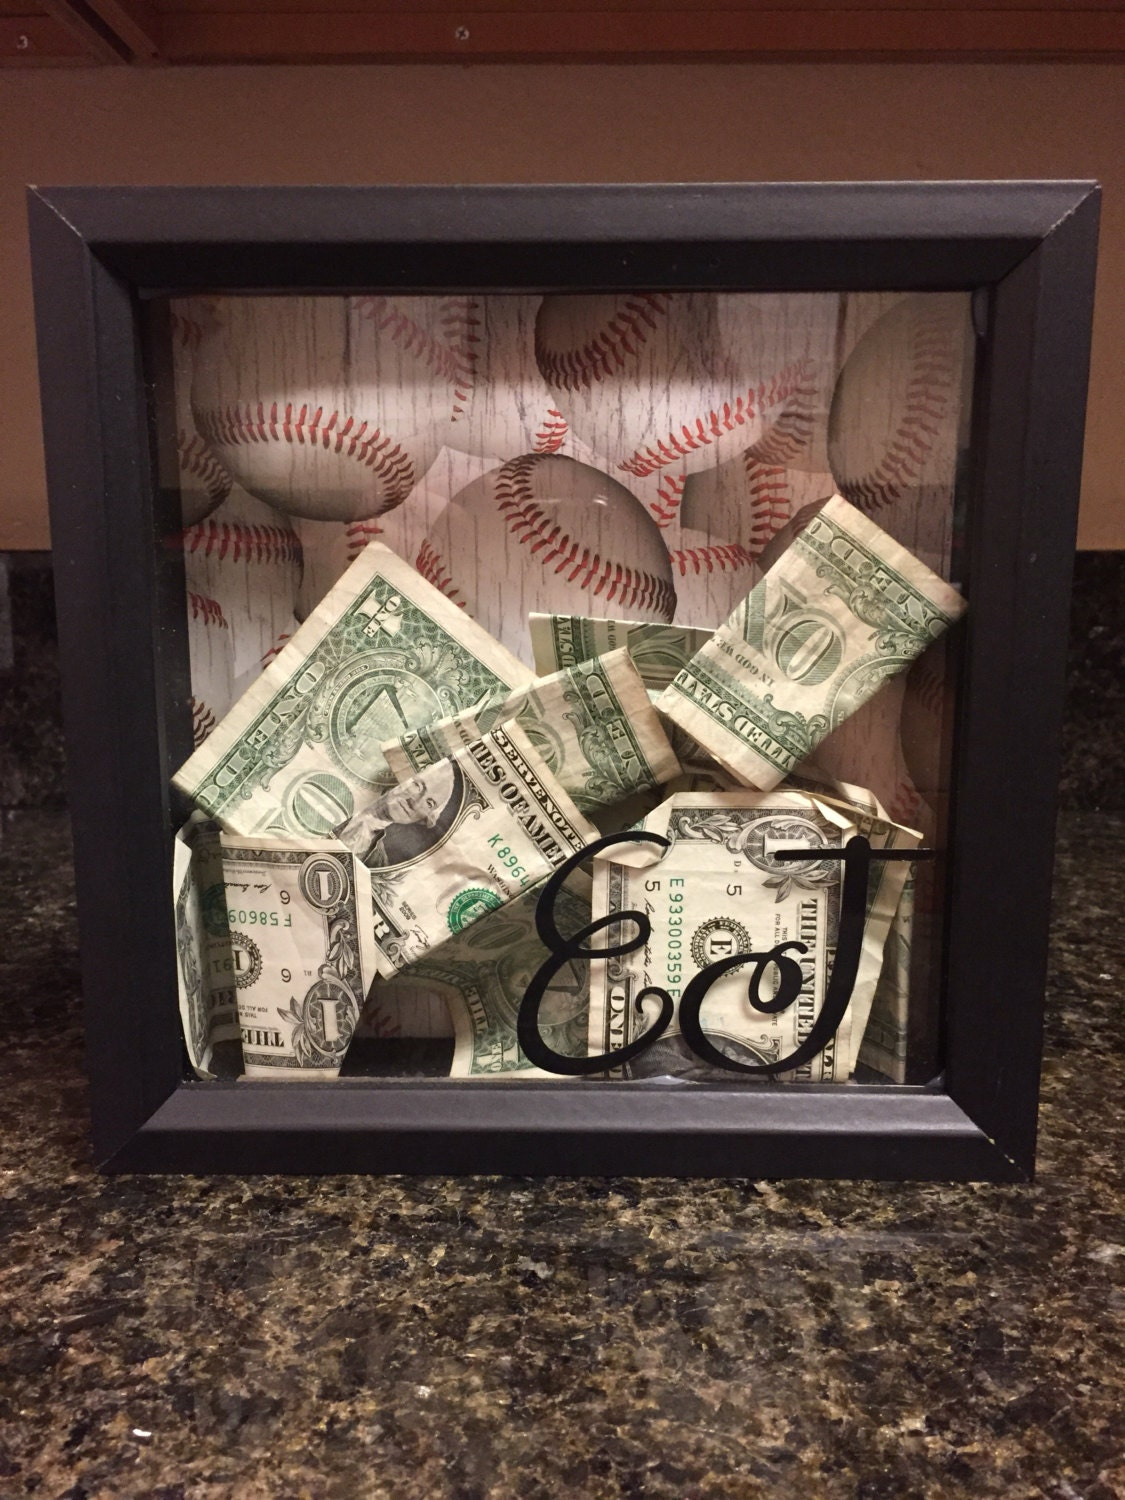 8x8 shadow box bank vacation fund savings personalized gift. Black Bedroom Furniture Sets. Home Design Ideas